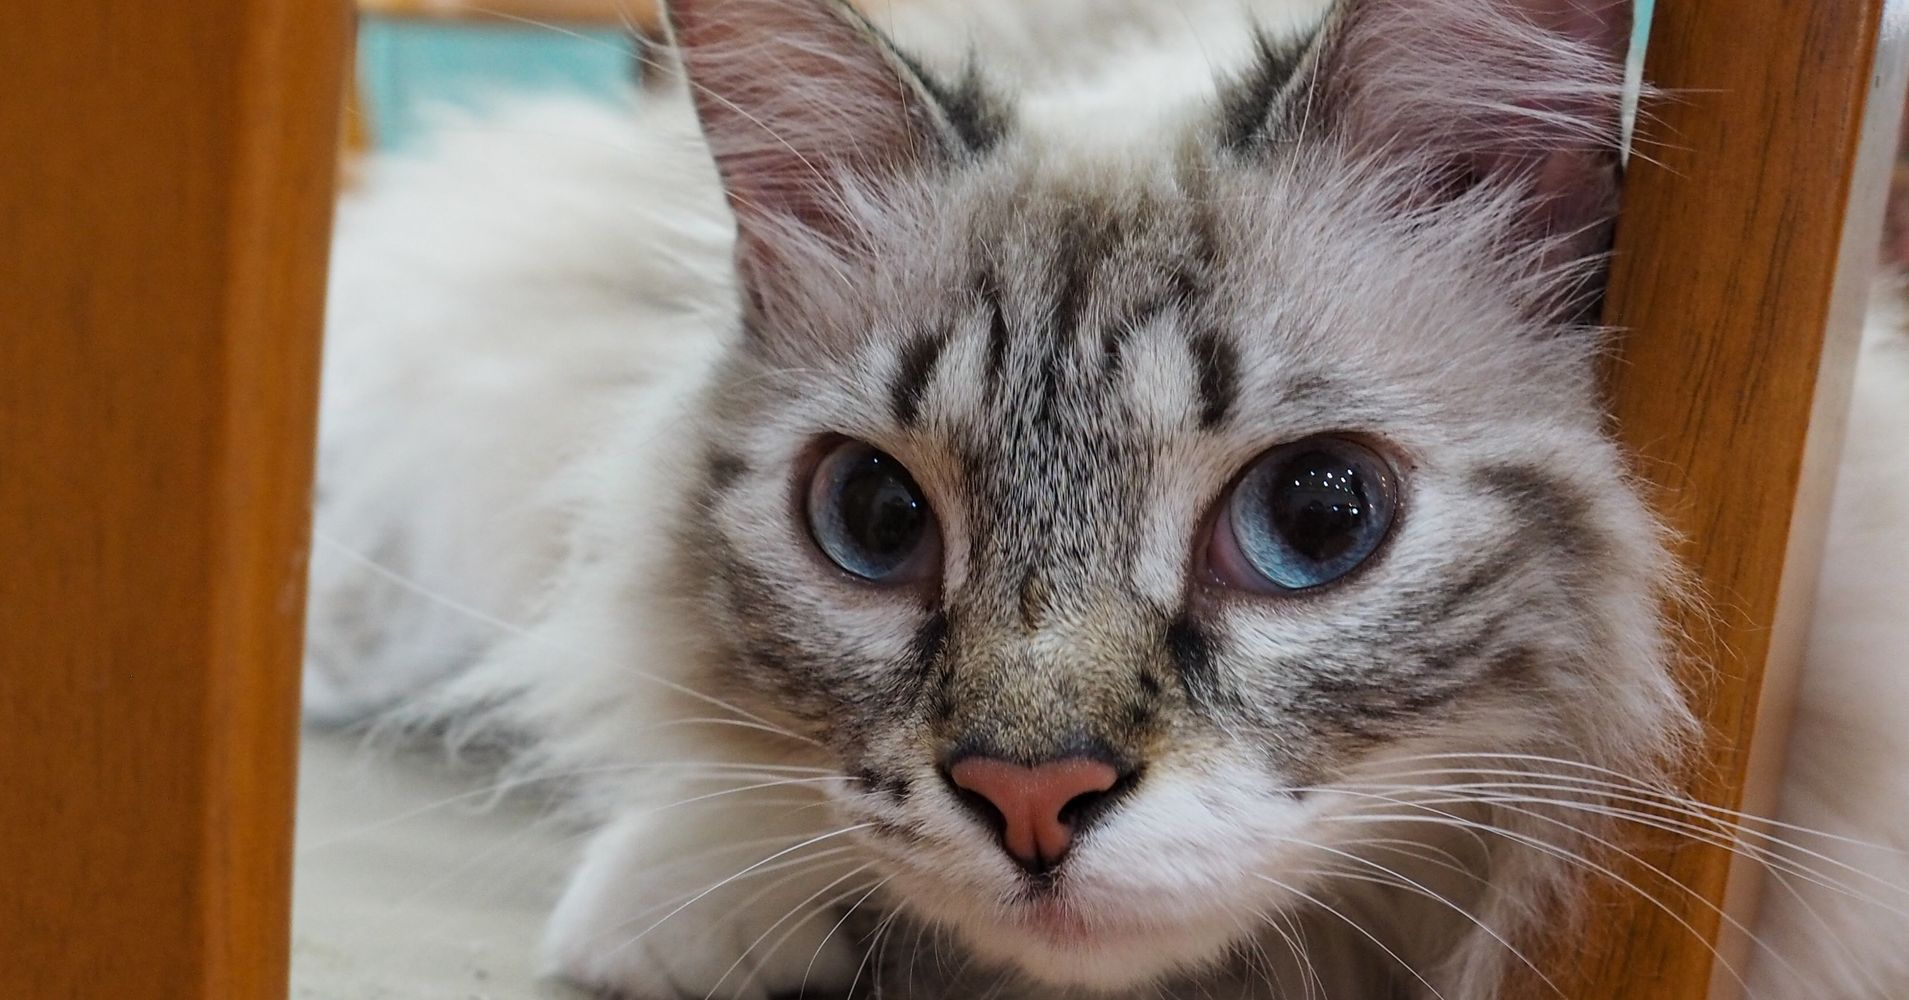 Cat Doesn't Get The Cream, But Does Get A Bag Full Of Narcotics | HuffPost